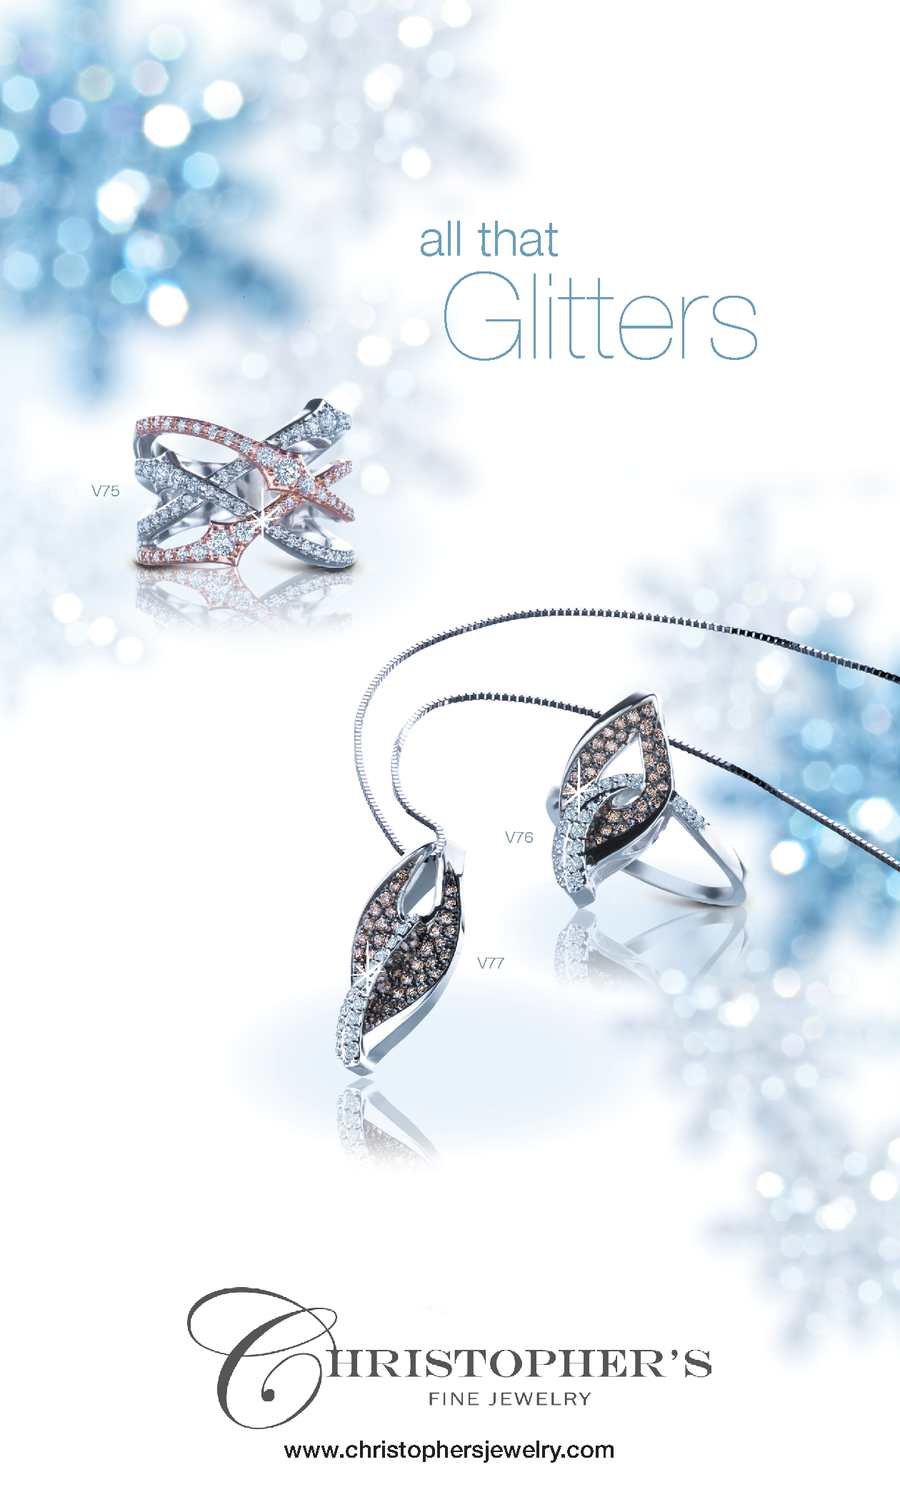 Christopher's Fine Jewelry Holiday Idea Book